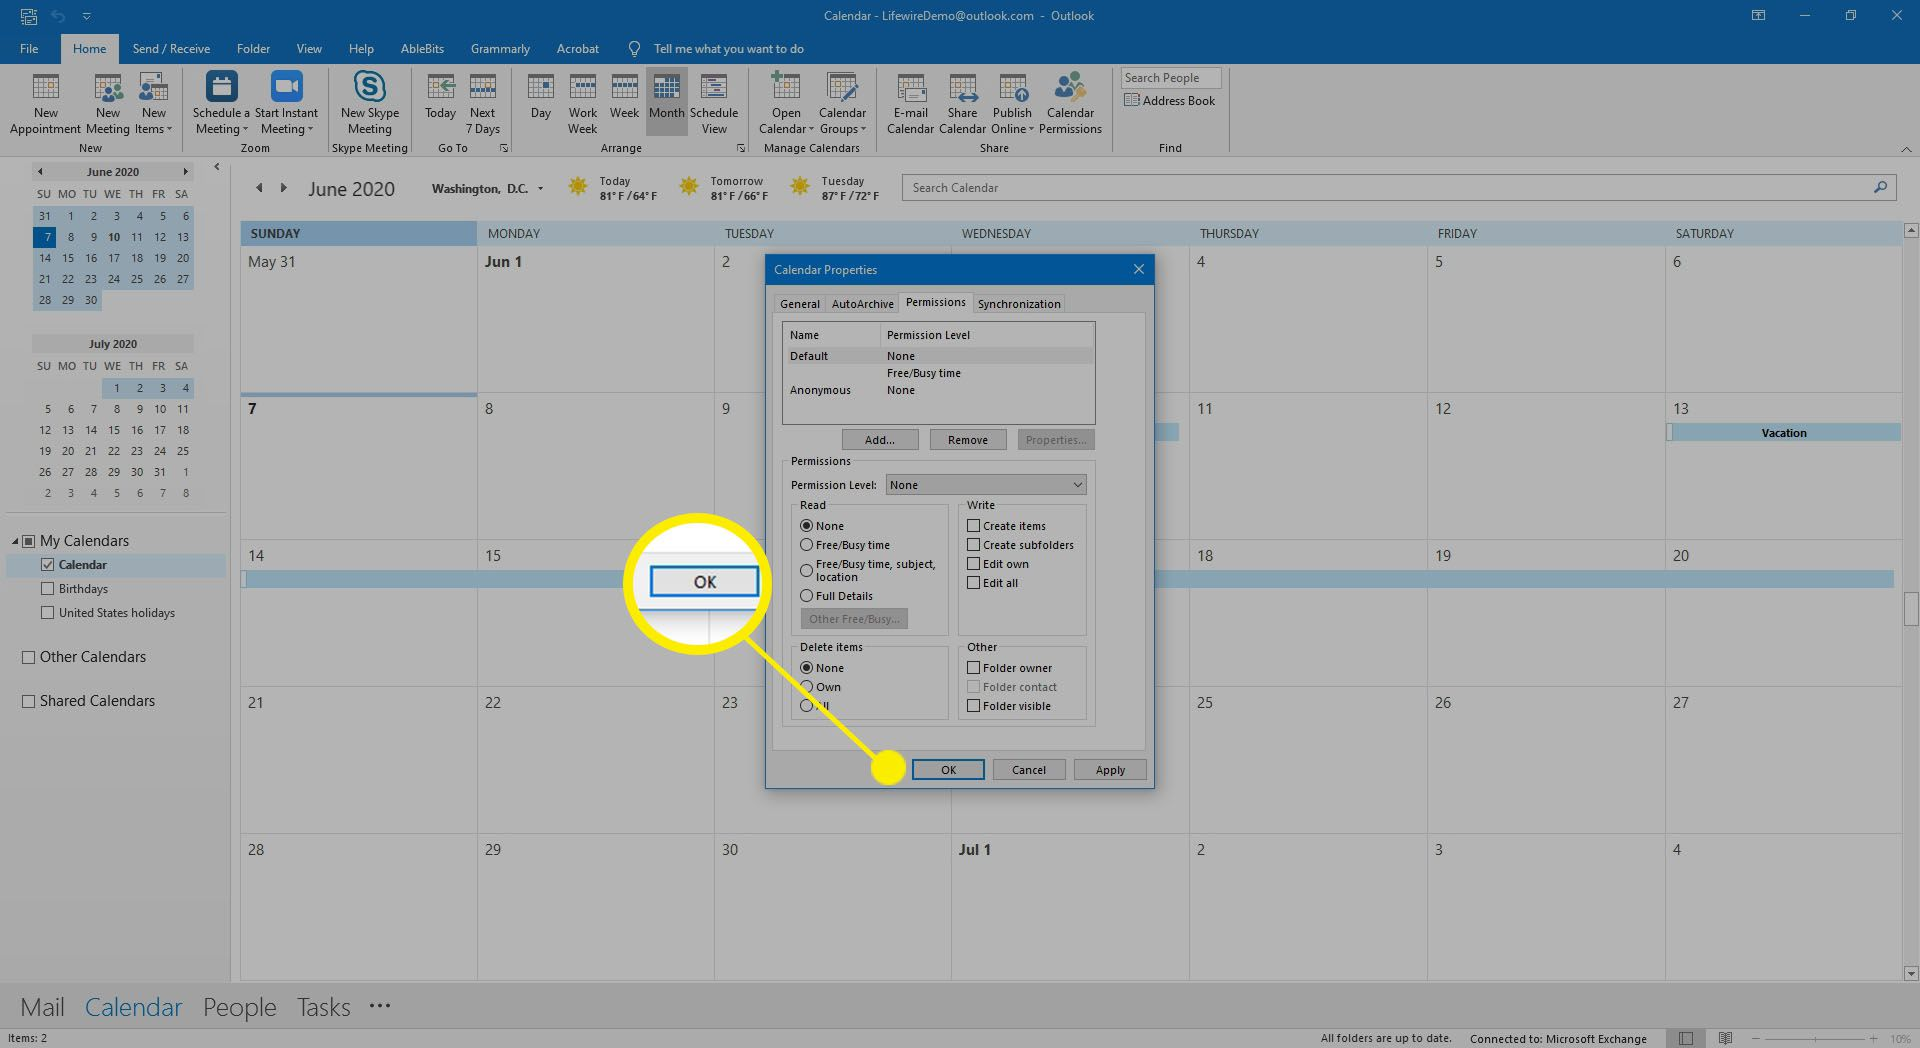 Selecting OK to complete removal of calendar permissions.